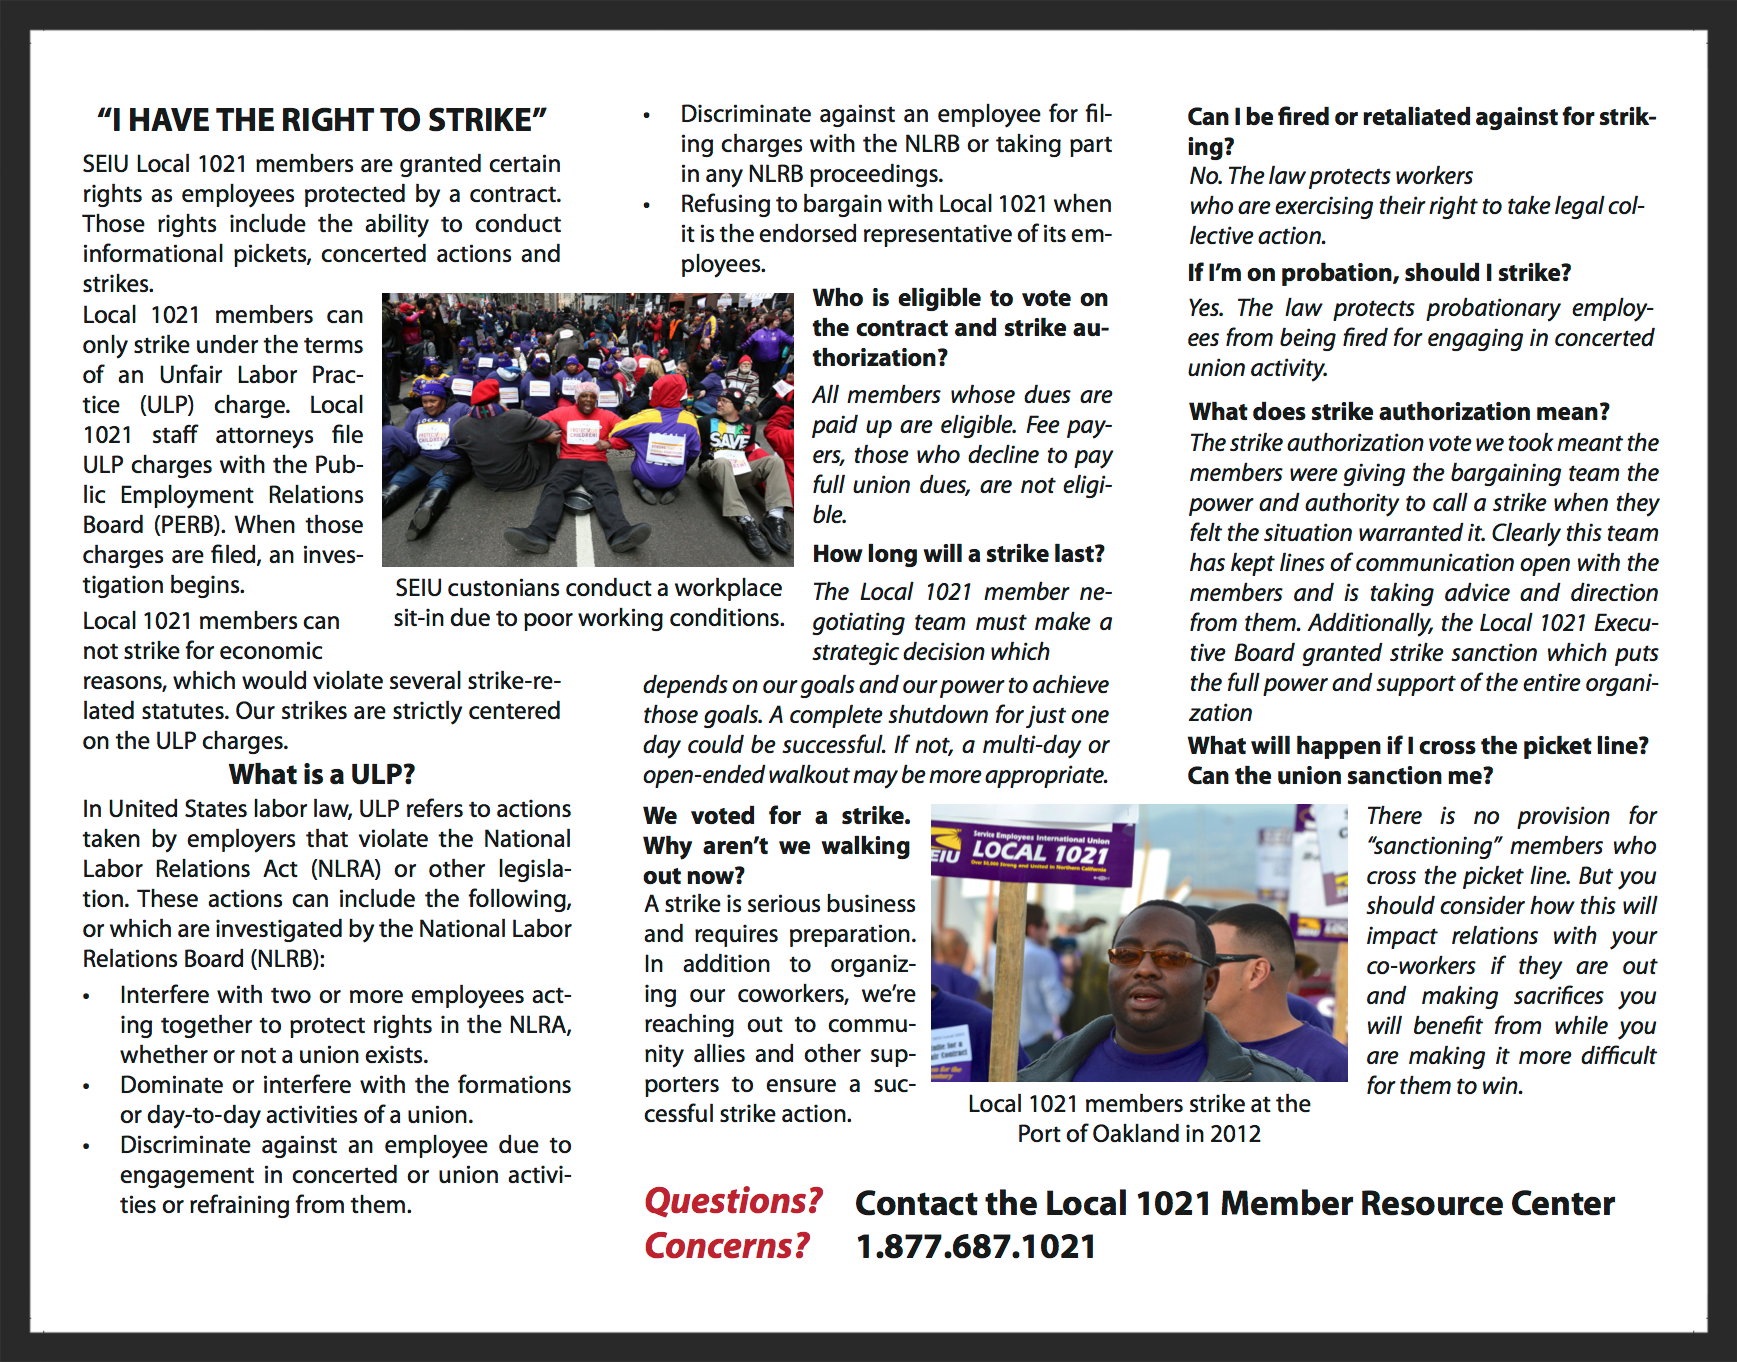 Three-panel pamphlet (2 of 2) used to educate union members of their rights.